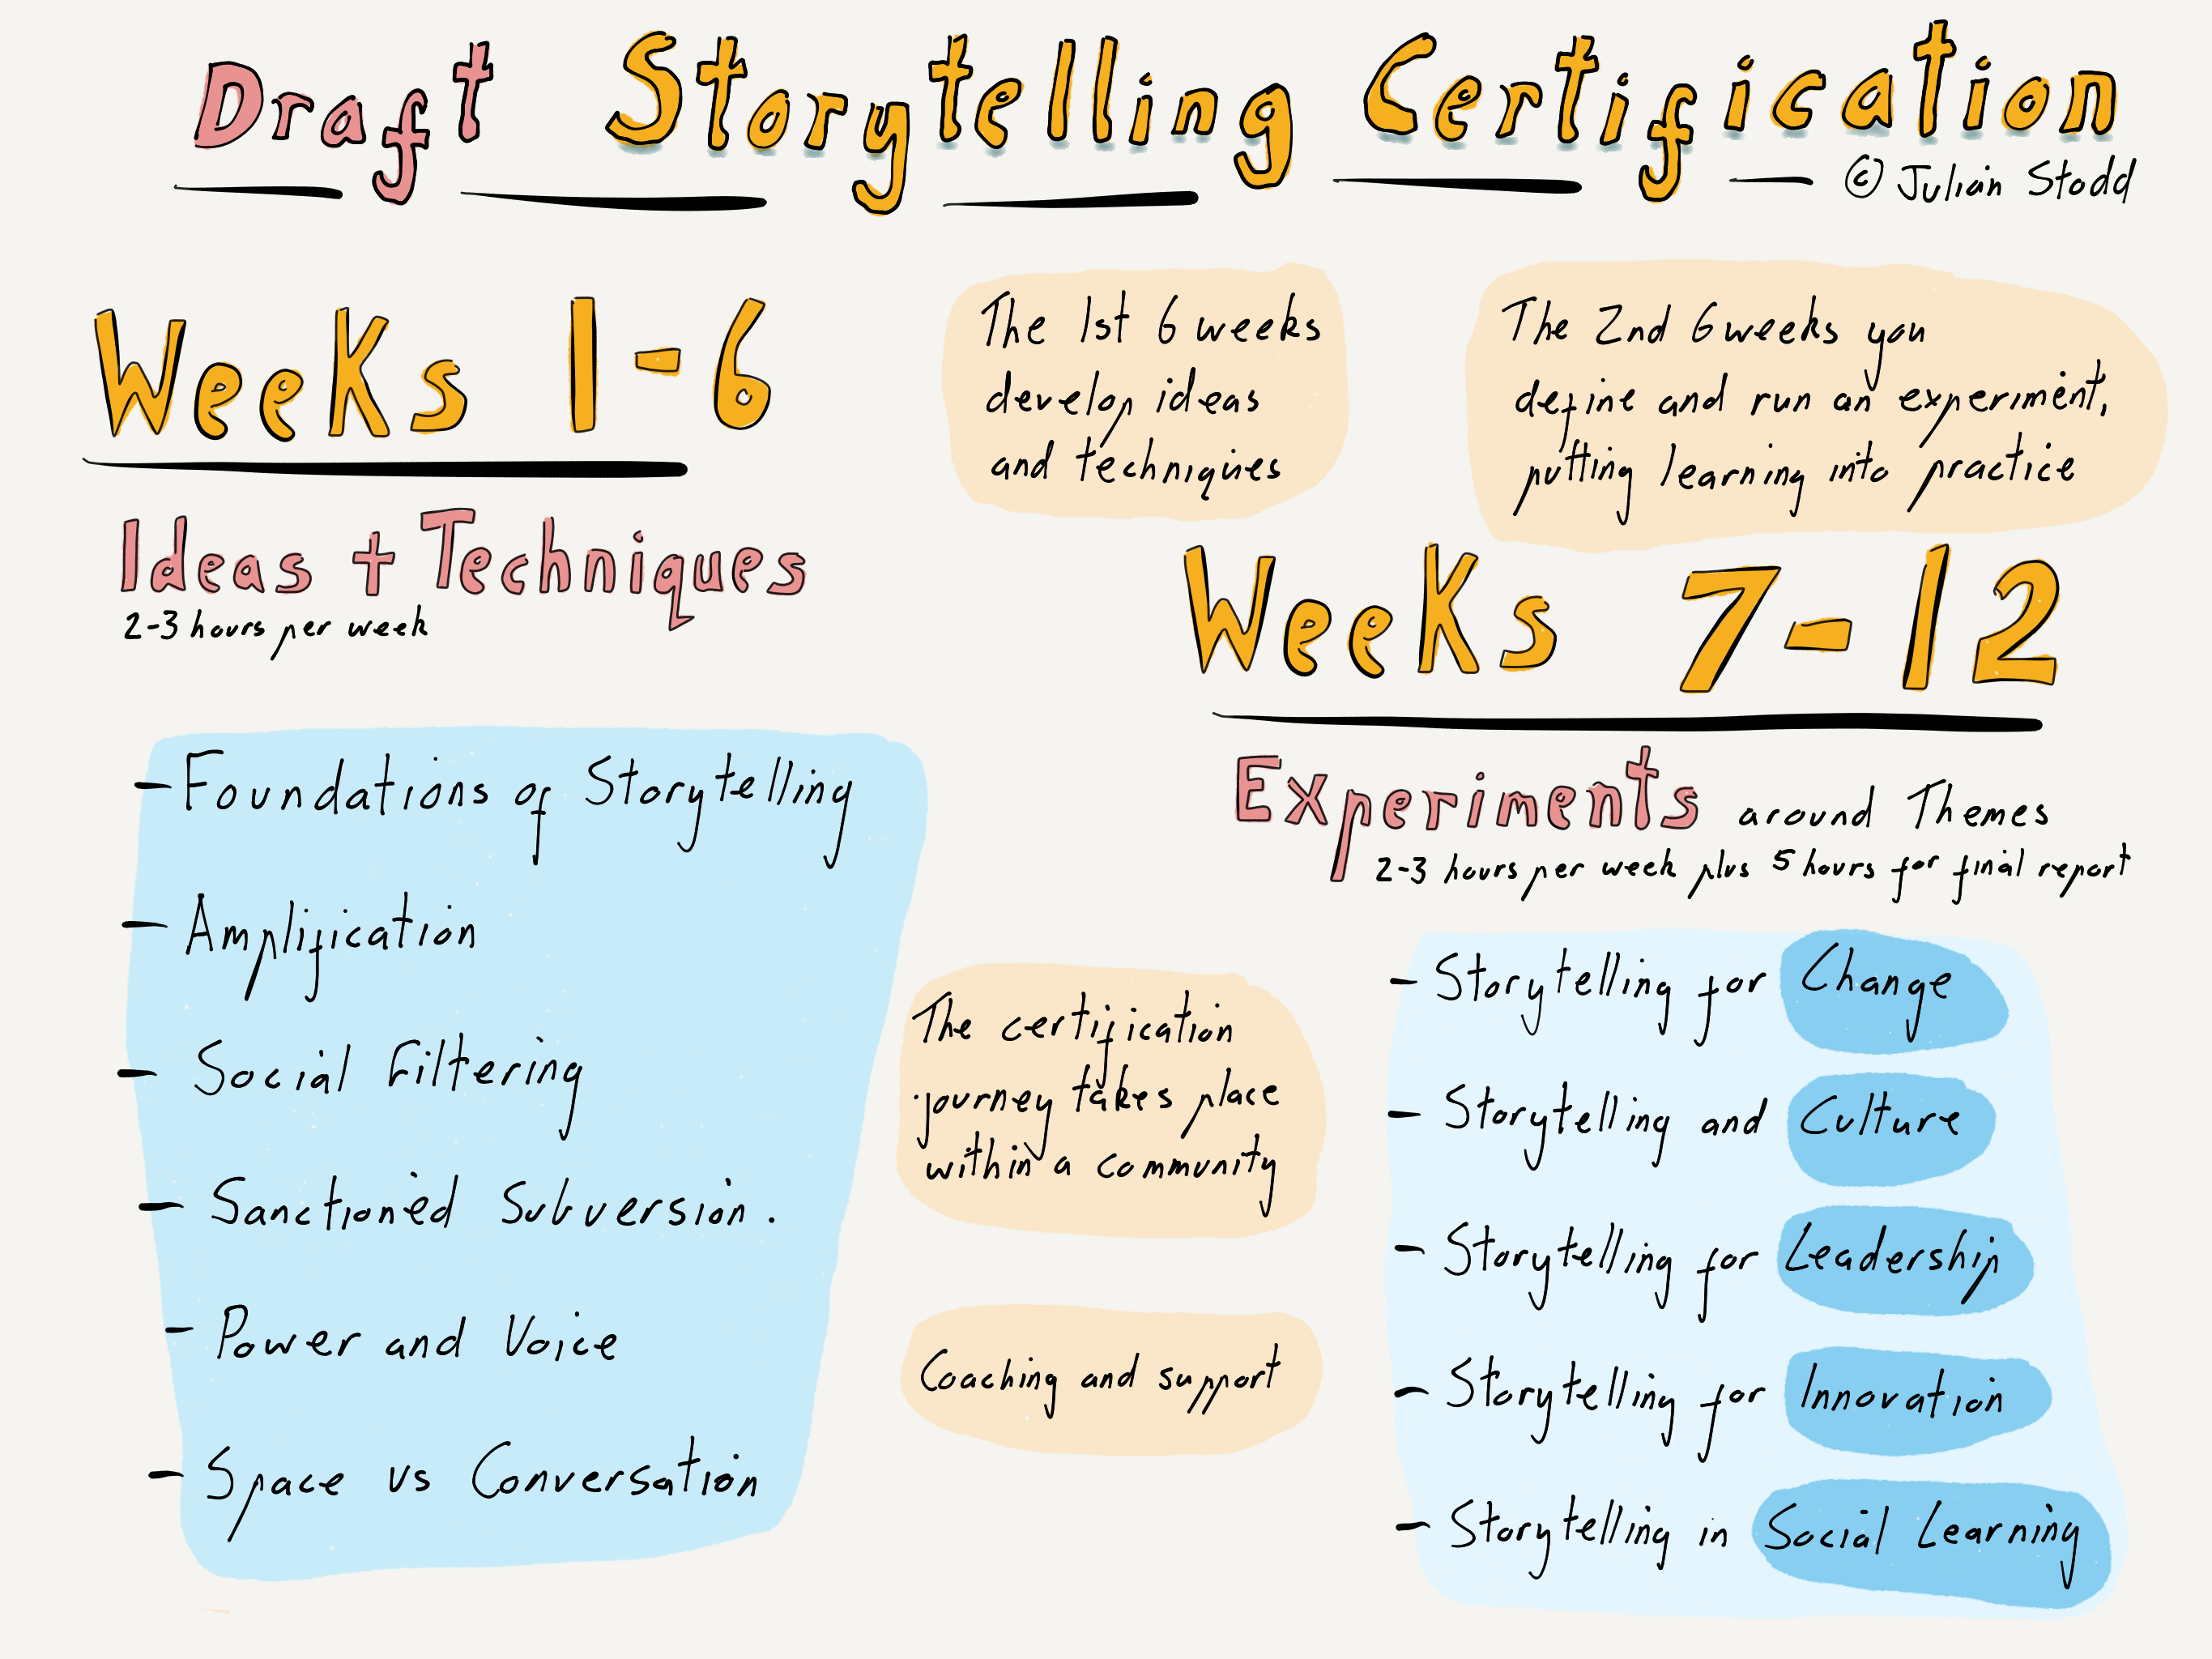 Social Leadership Storytelling Certification Workingoutloud